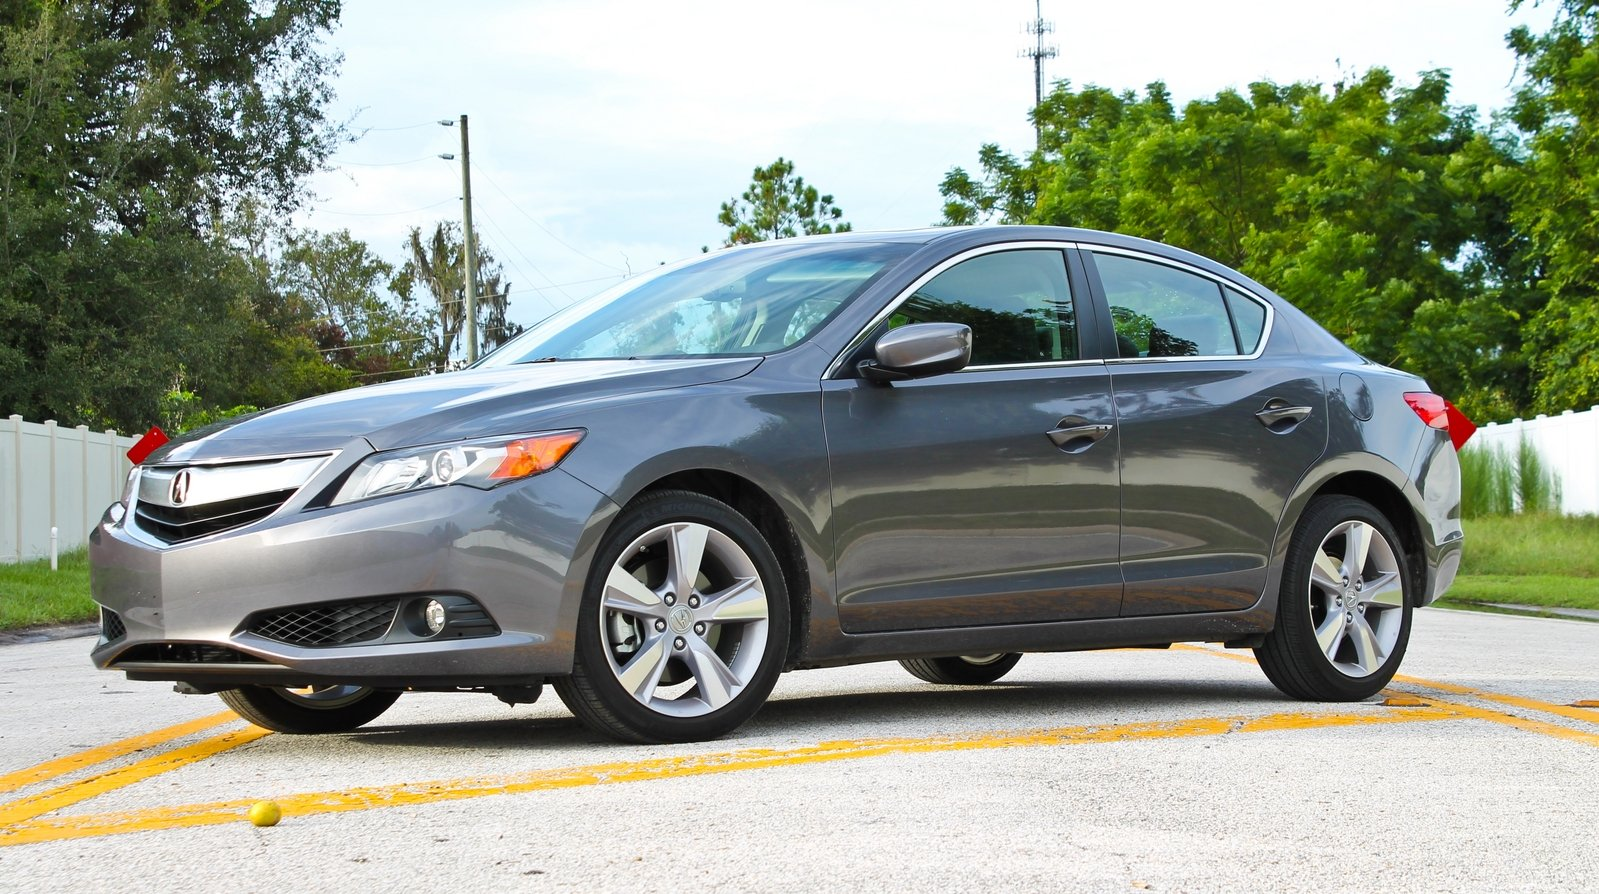 2015 acura ilx 2 4l premium driven review top speed. Black Bedroom Furniture Sets. Home Design Ideas